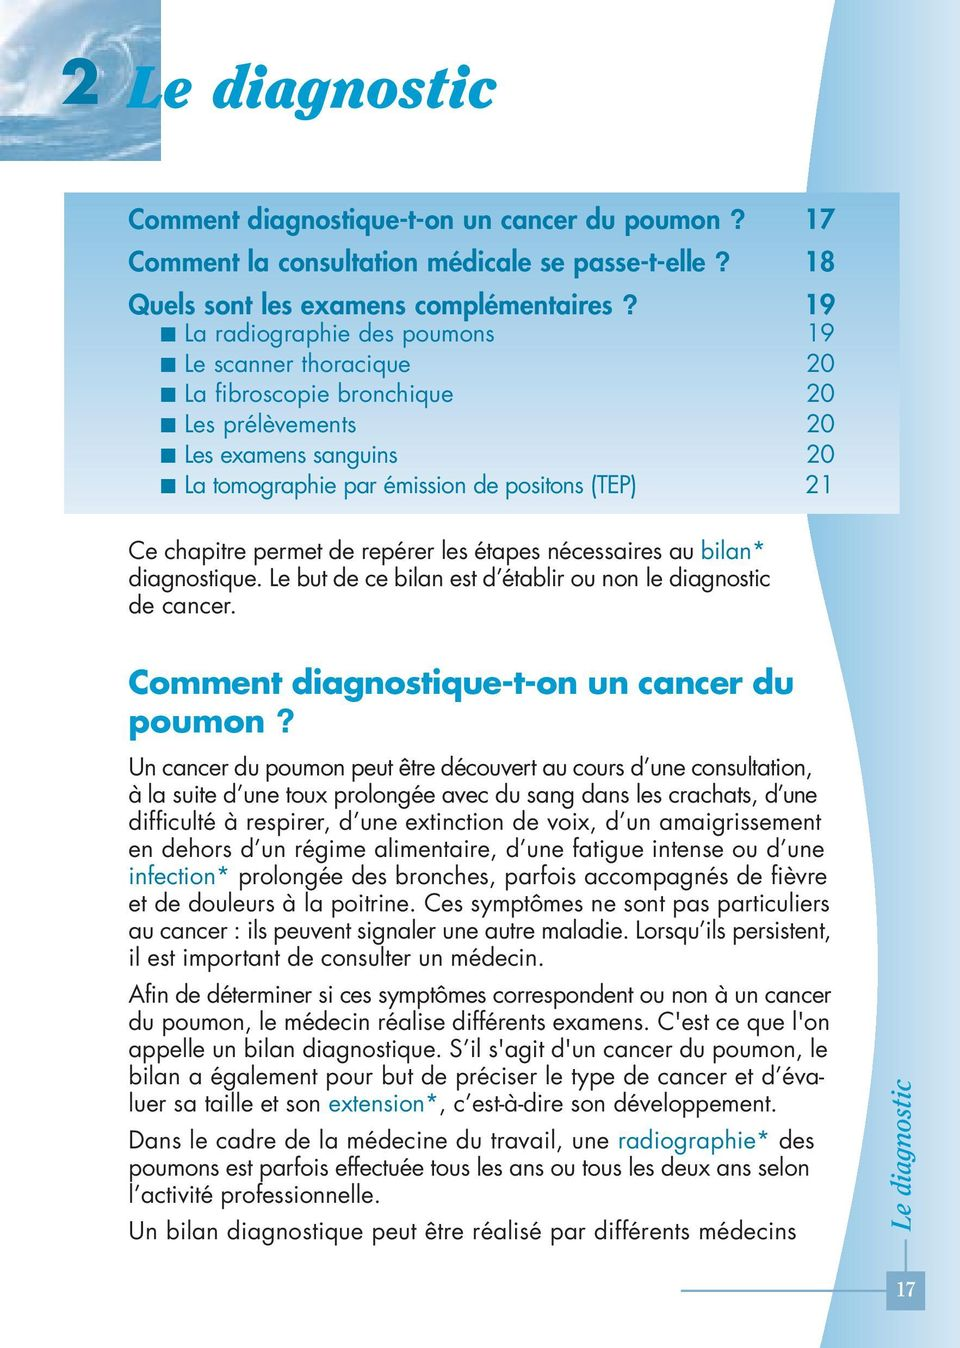 de repérer les étapes nécessaires au bilan* diagnostique. Le but de ce bilan est d établir ou non le diagnostic de cancer. Comment diagnostique-t-on un cancer du poumon?